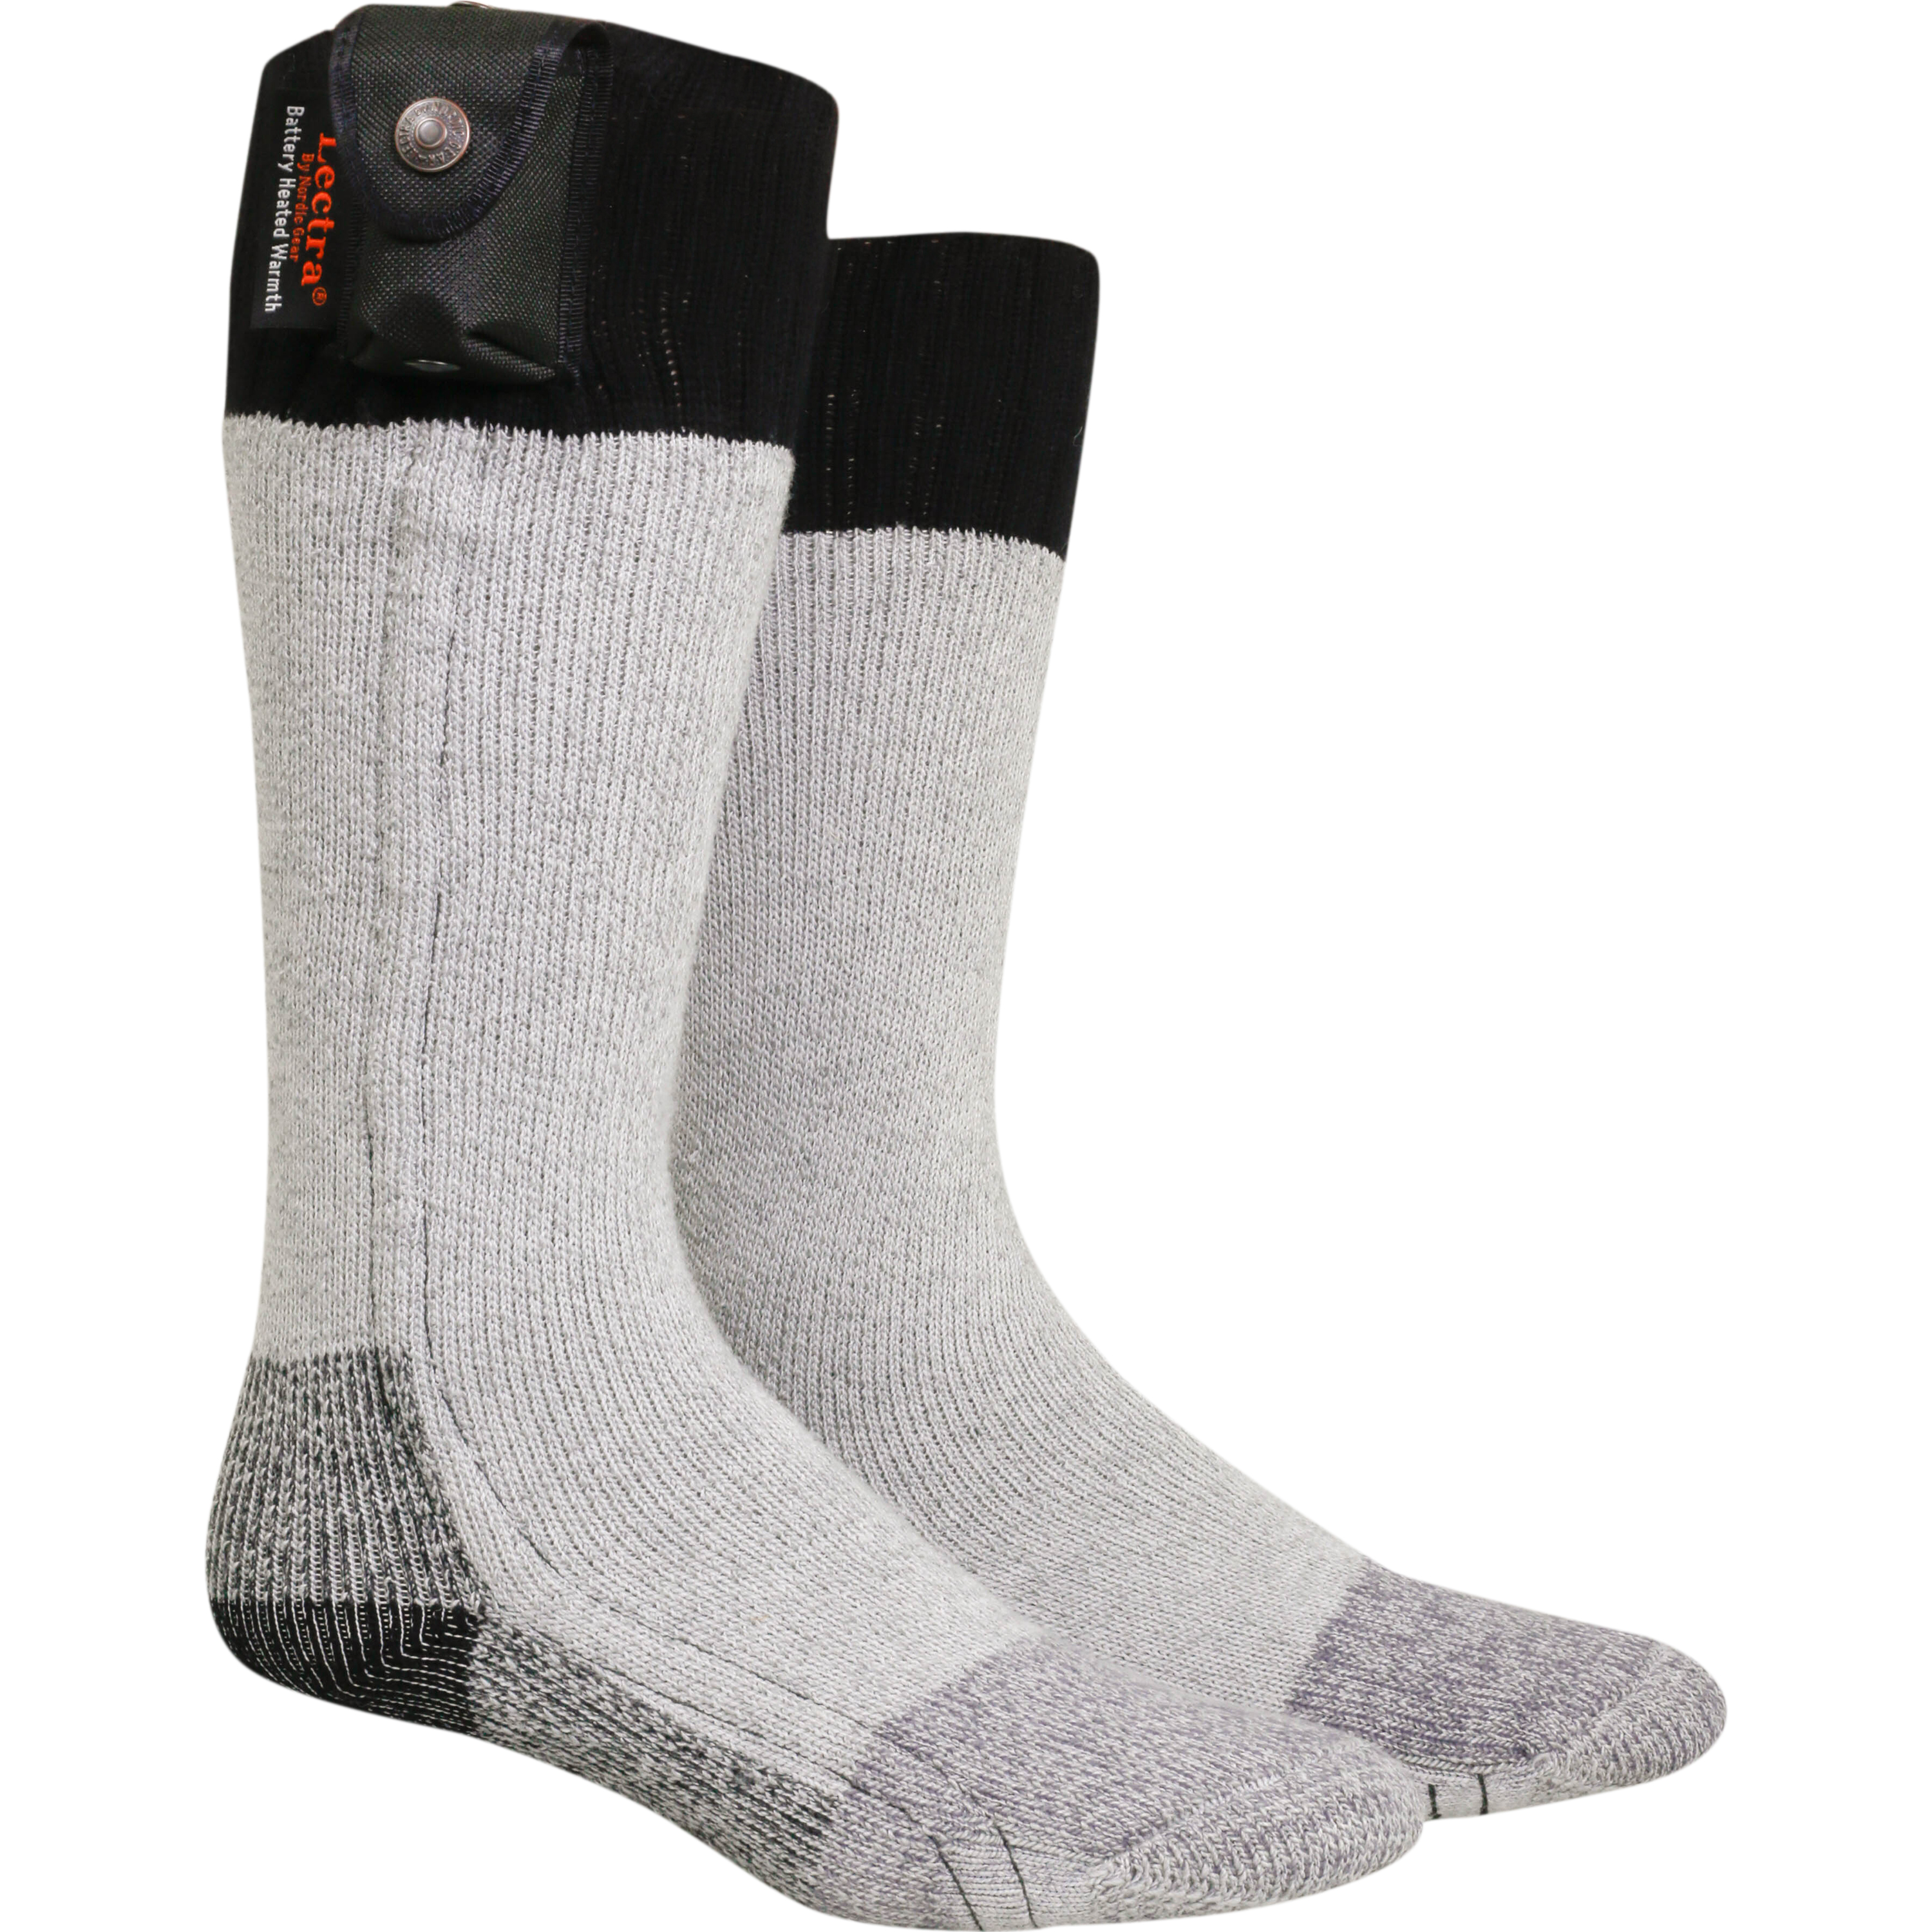 Lectra Sox Hiker Boot Socks, Electric Battery Heated Socks by Heated Socks